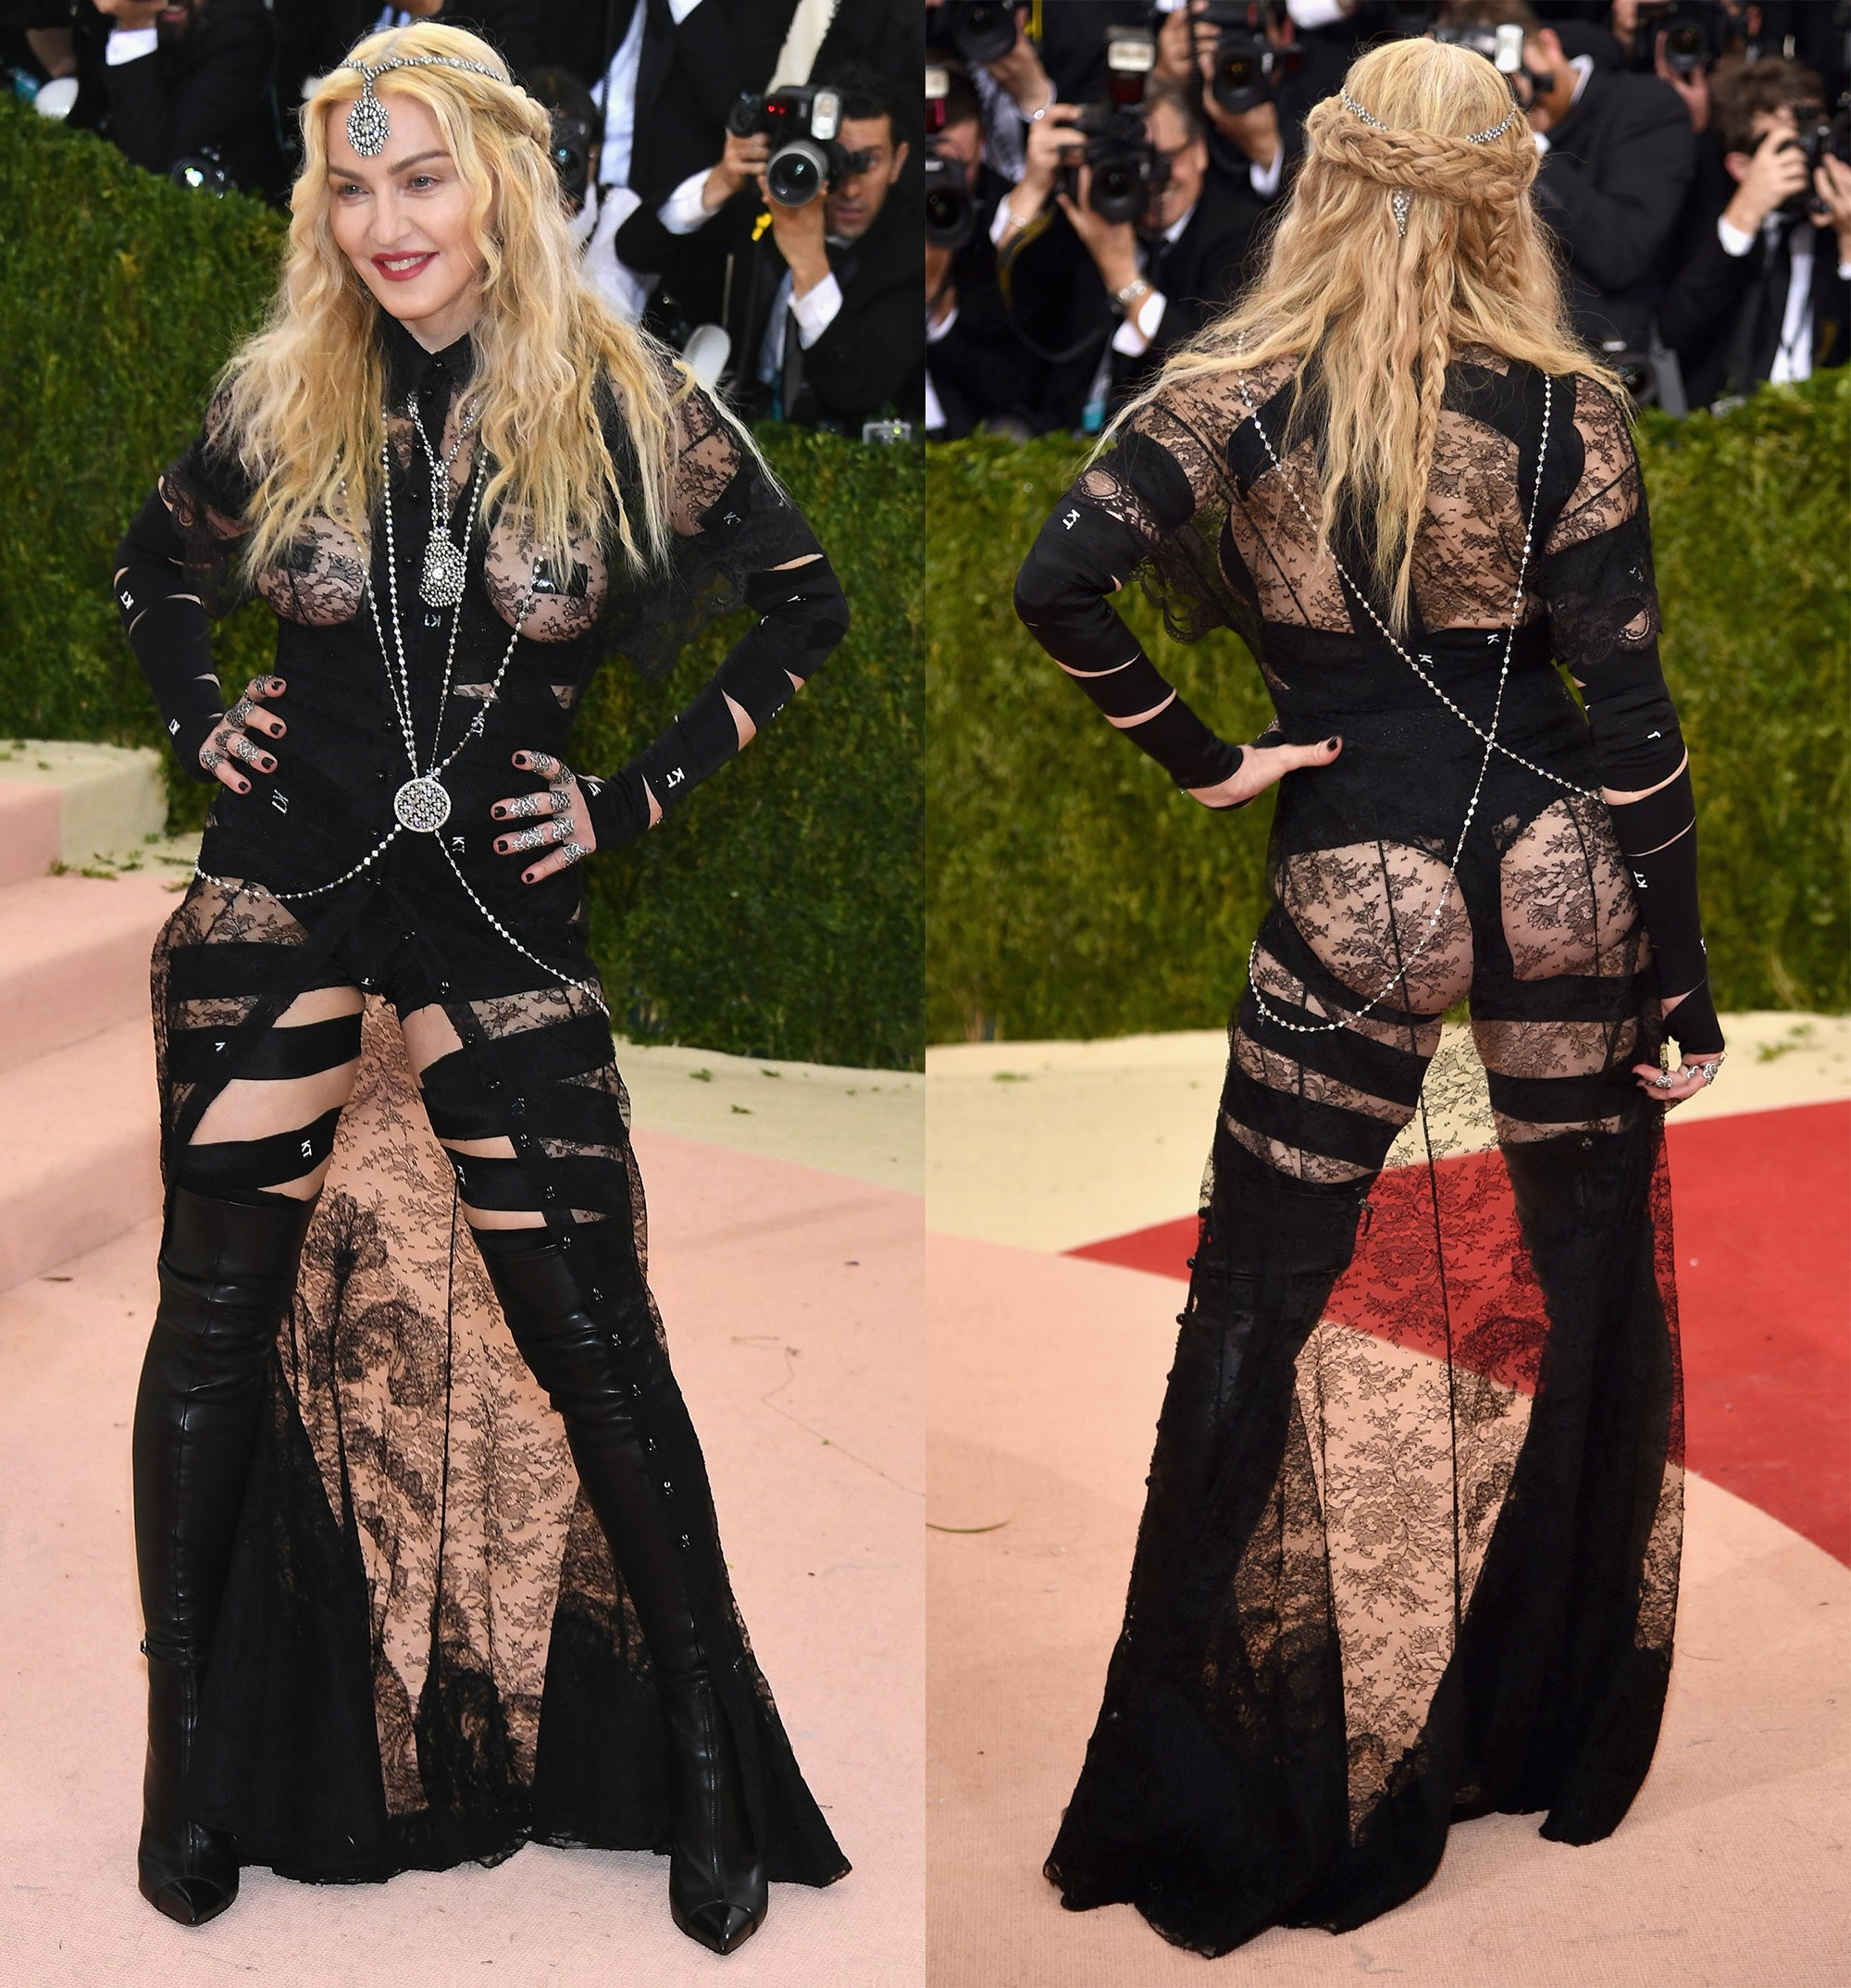 20 Outrageous Looks That Prove the Met Gala Is the Only Red Carpet ...